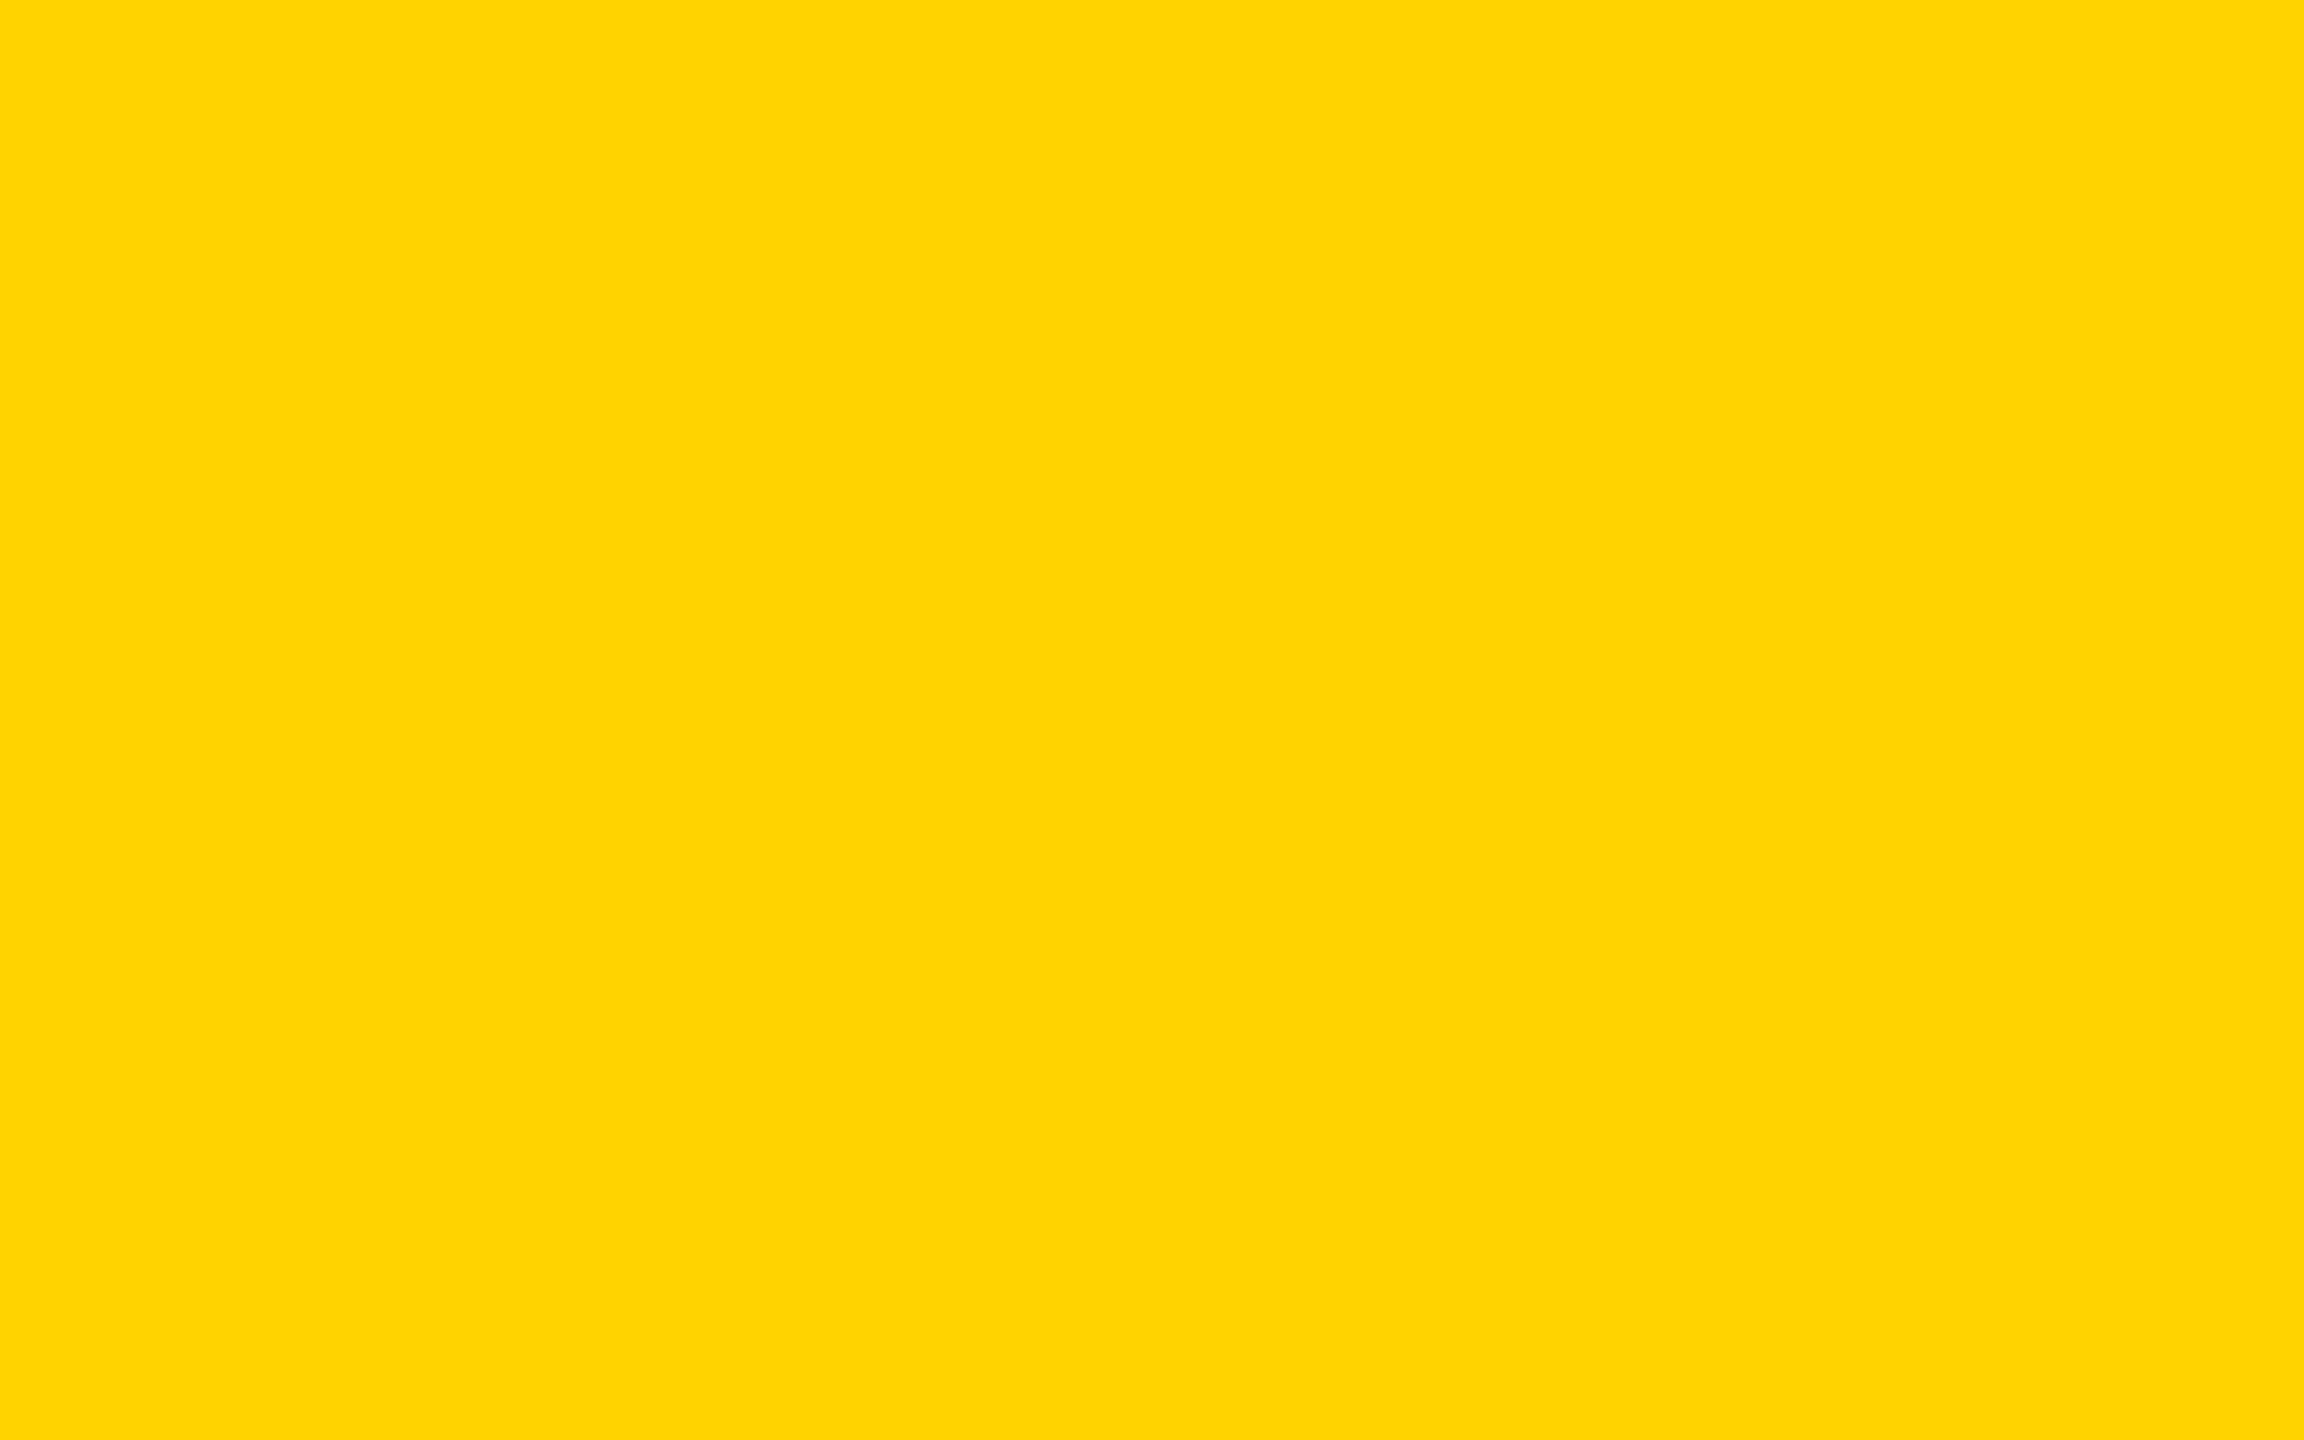 2304x1440 Cyber Yellow Solid Color Background